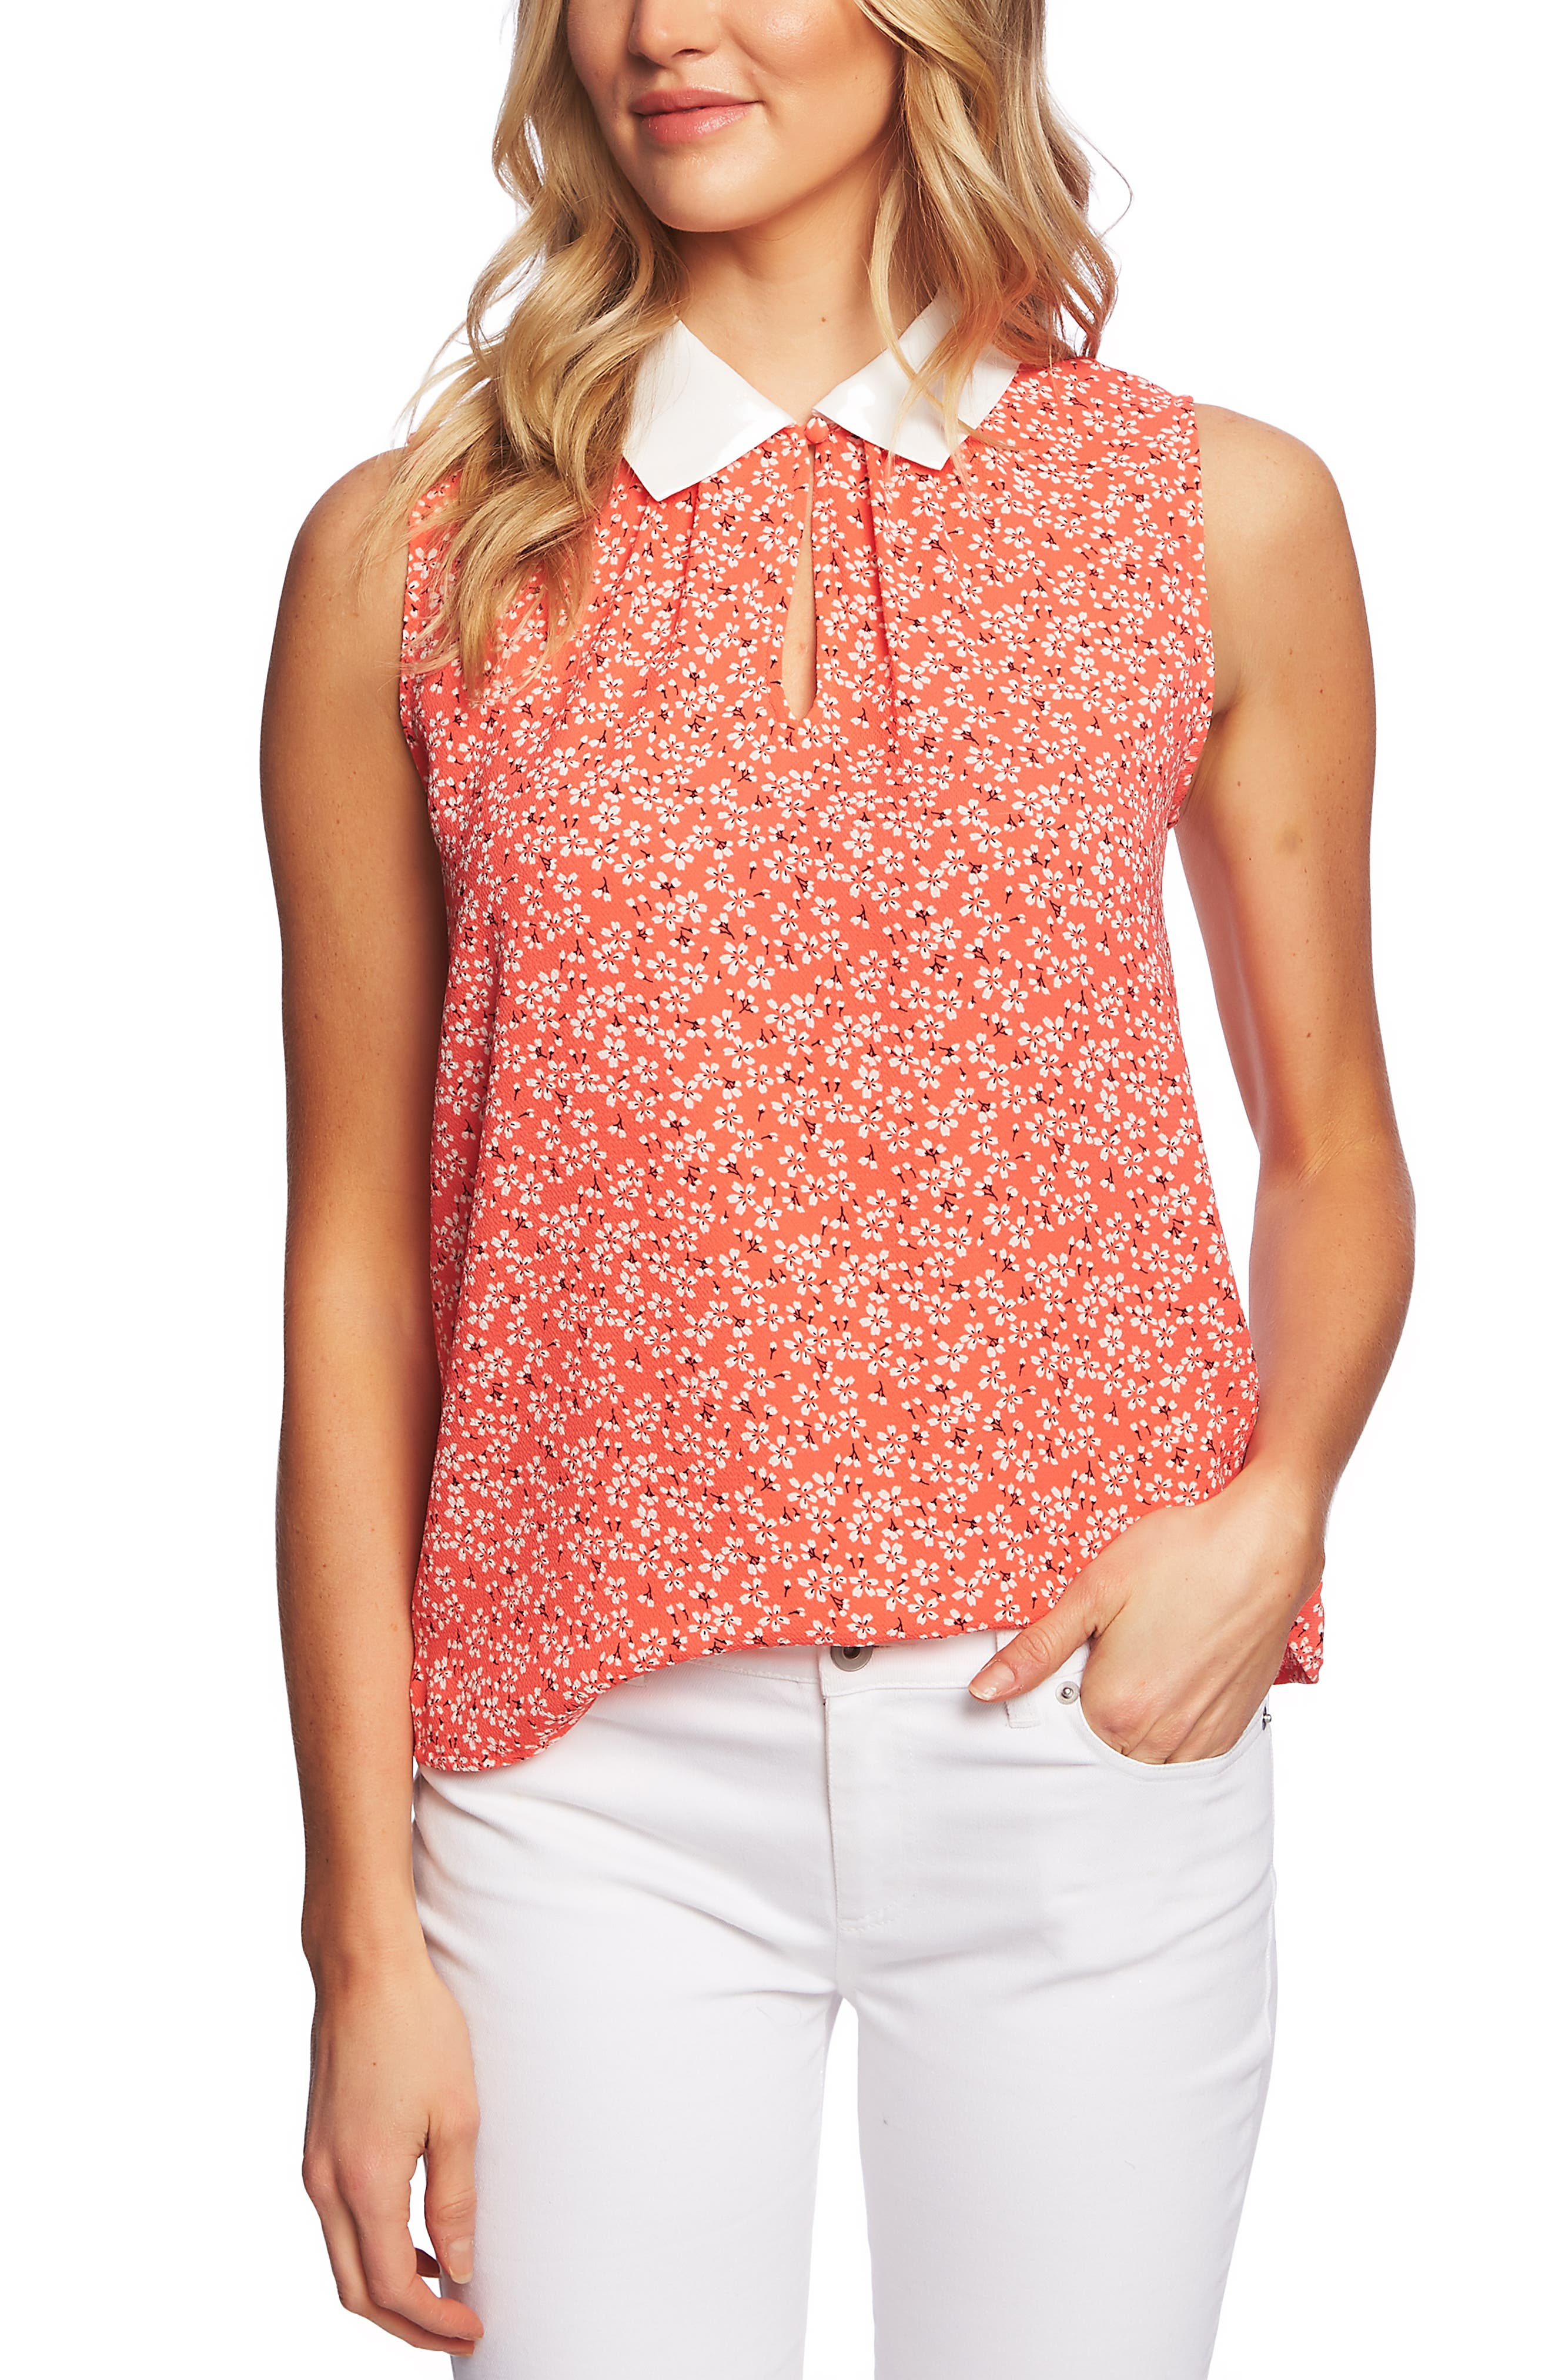 Image of CeCe by Cynthia Steffe Sakura Delight Floral Sleeveless Blouse